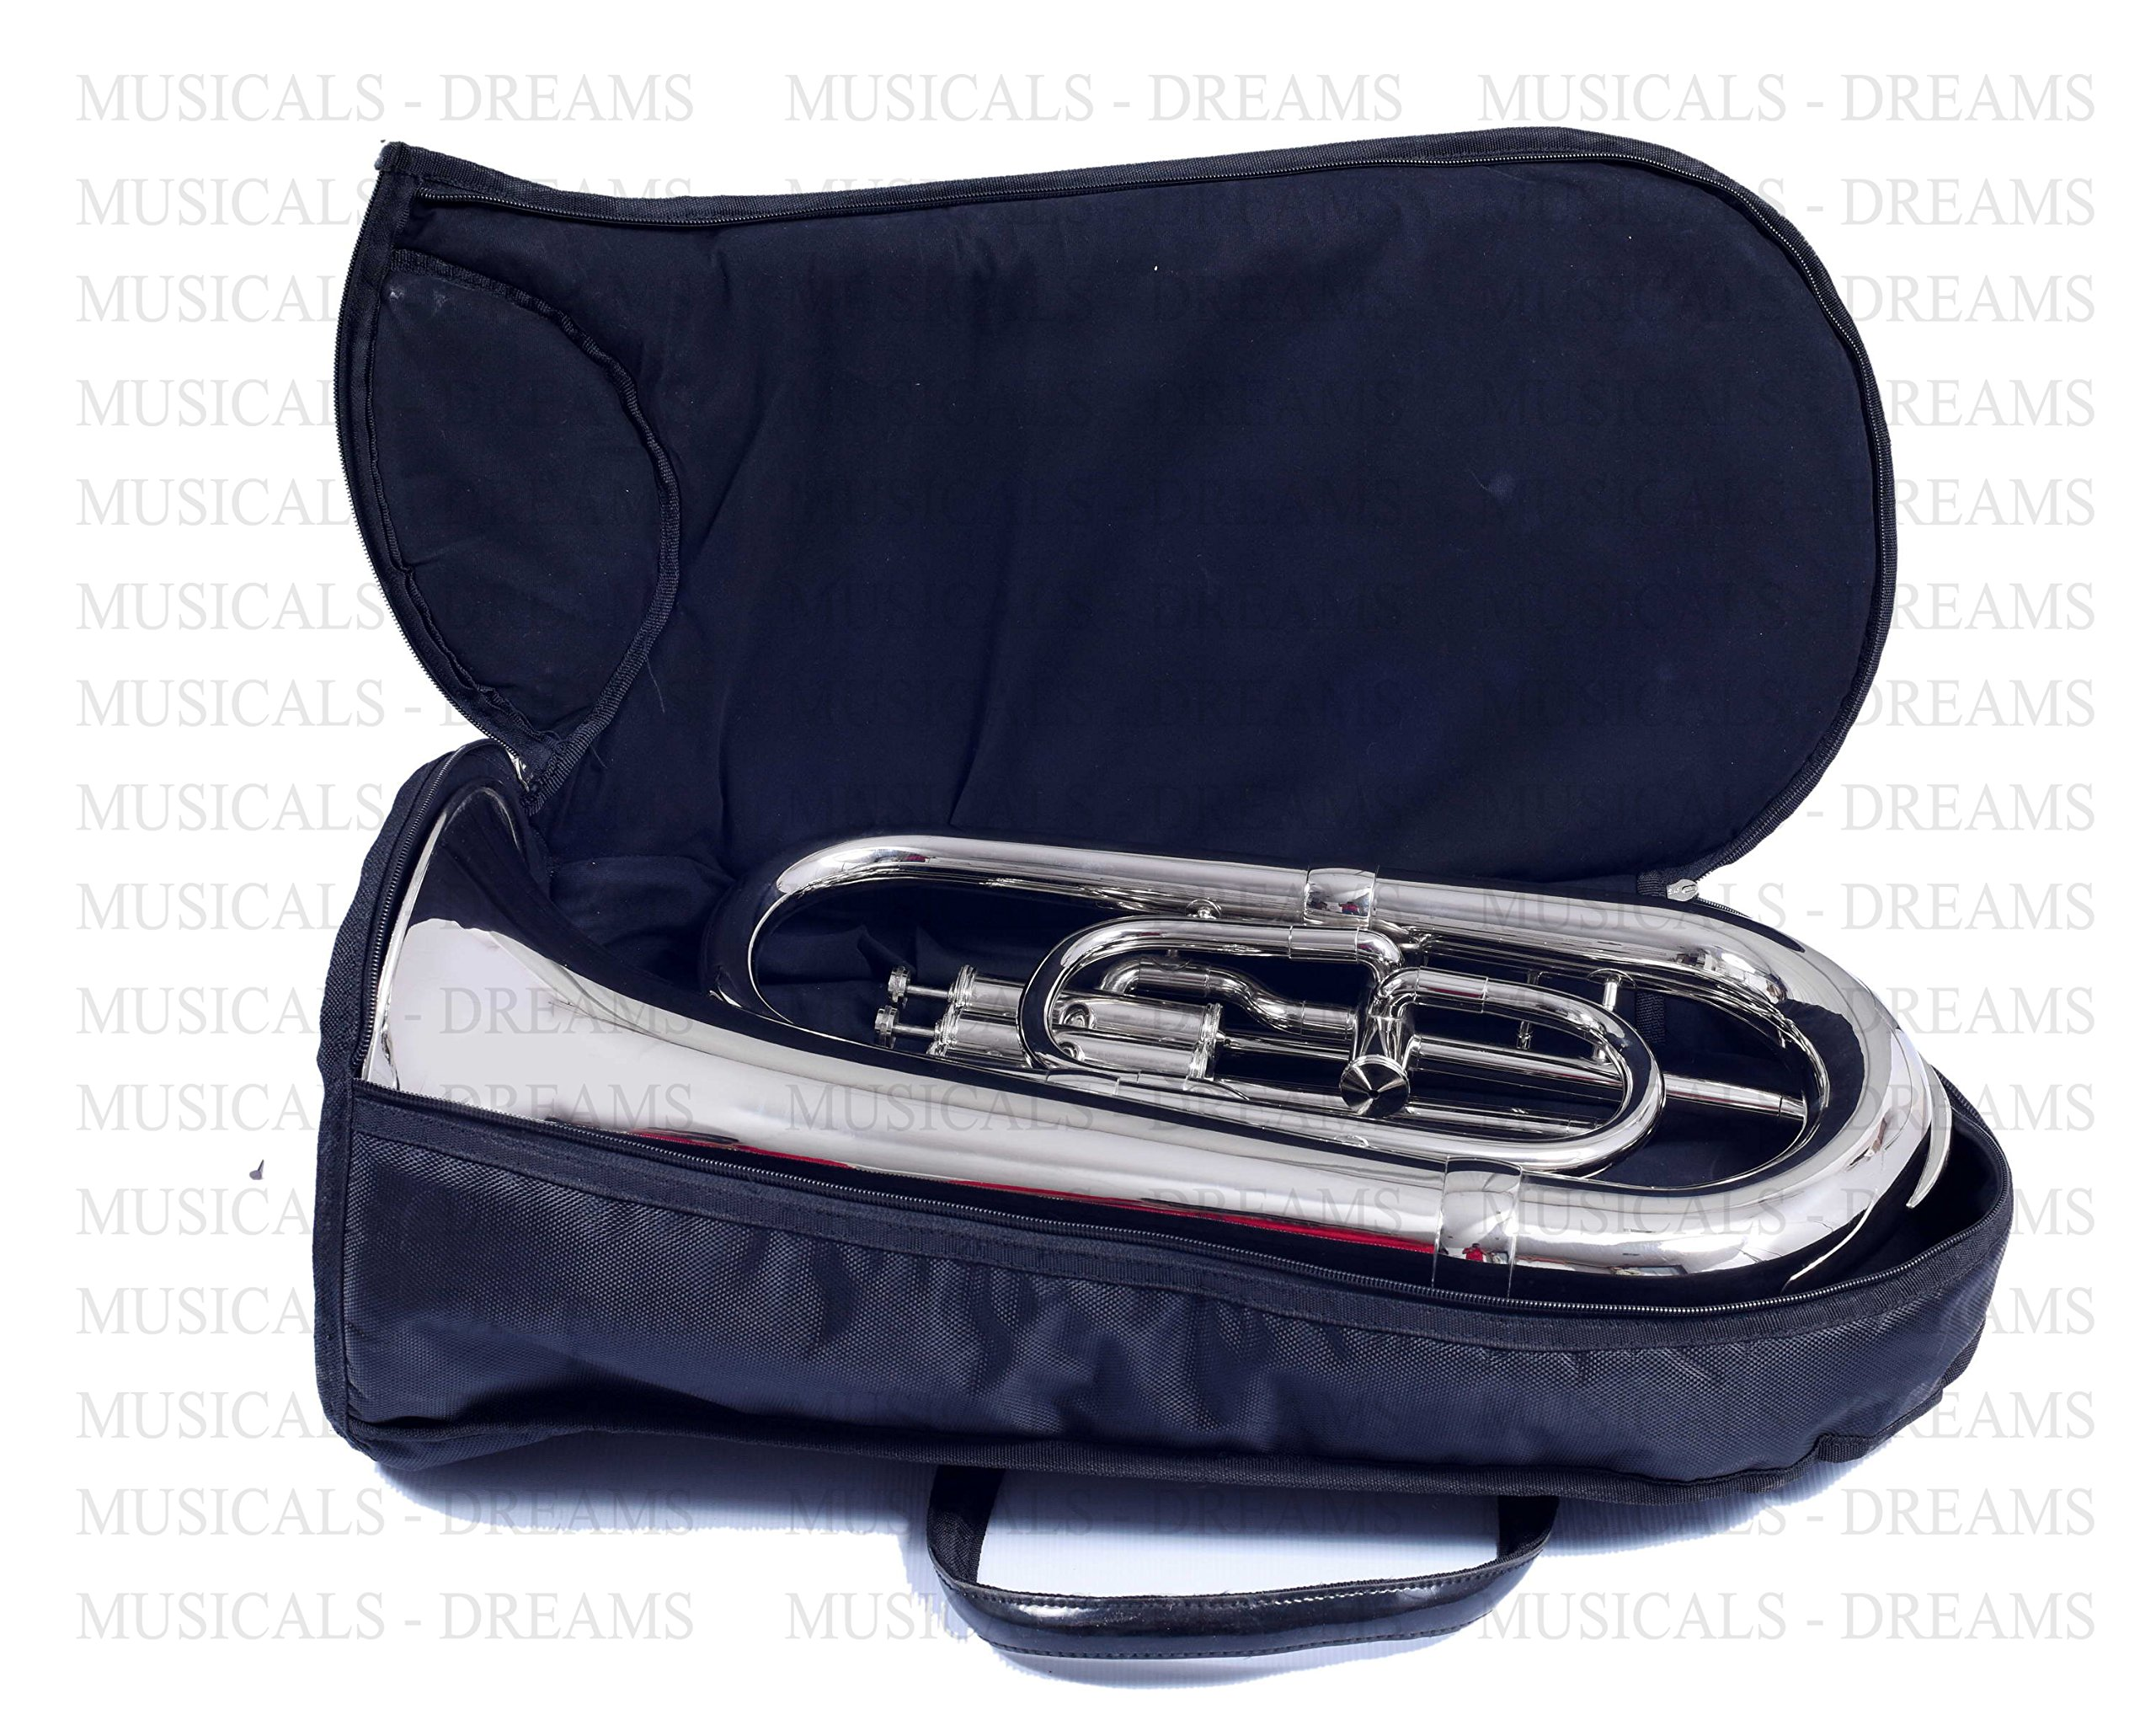 Moonflag Bb Euphonium Nickel 4 Valve by NASIR ALI (Image #2)